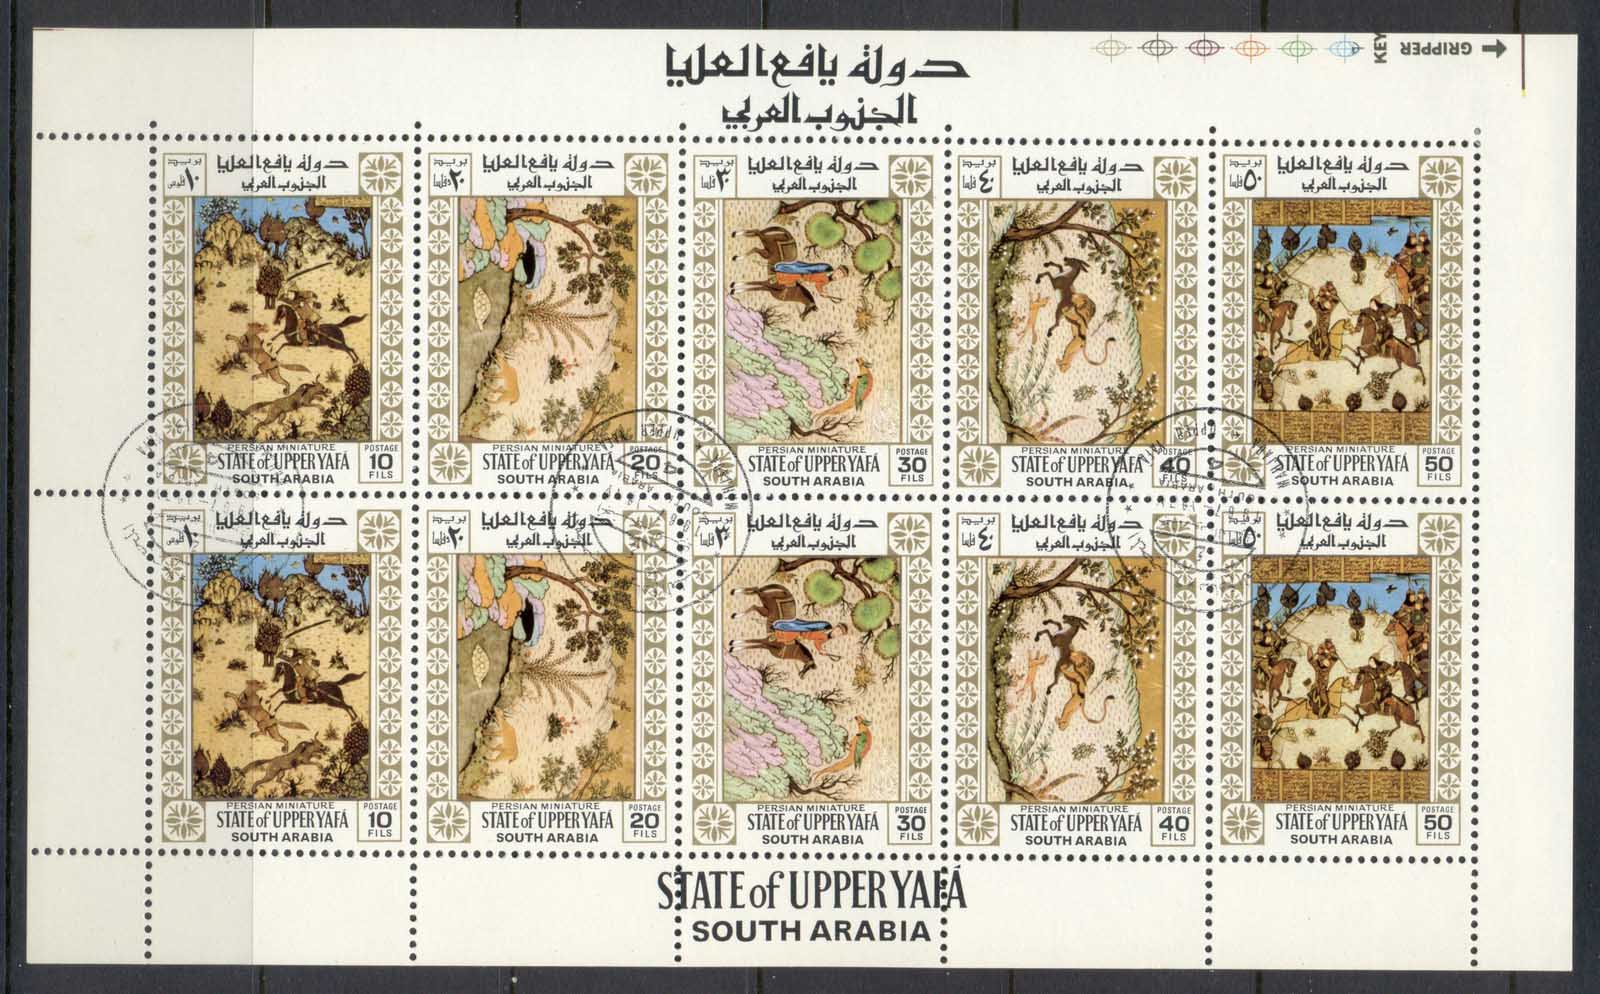 Aden State of Upper Yaffa 1967 Mi#50-54 Persian Miniatures sheetlet CTO